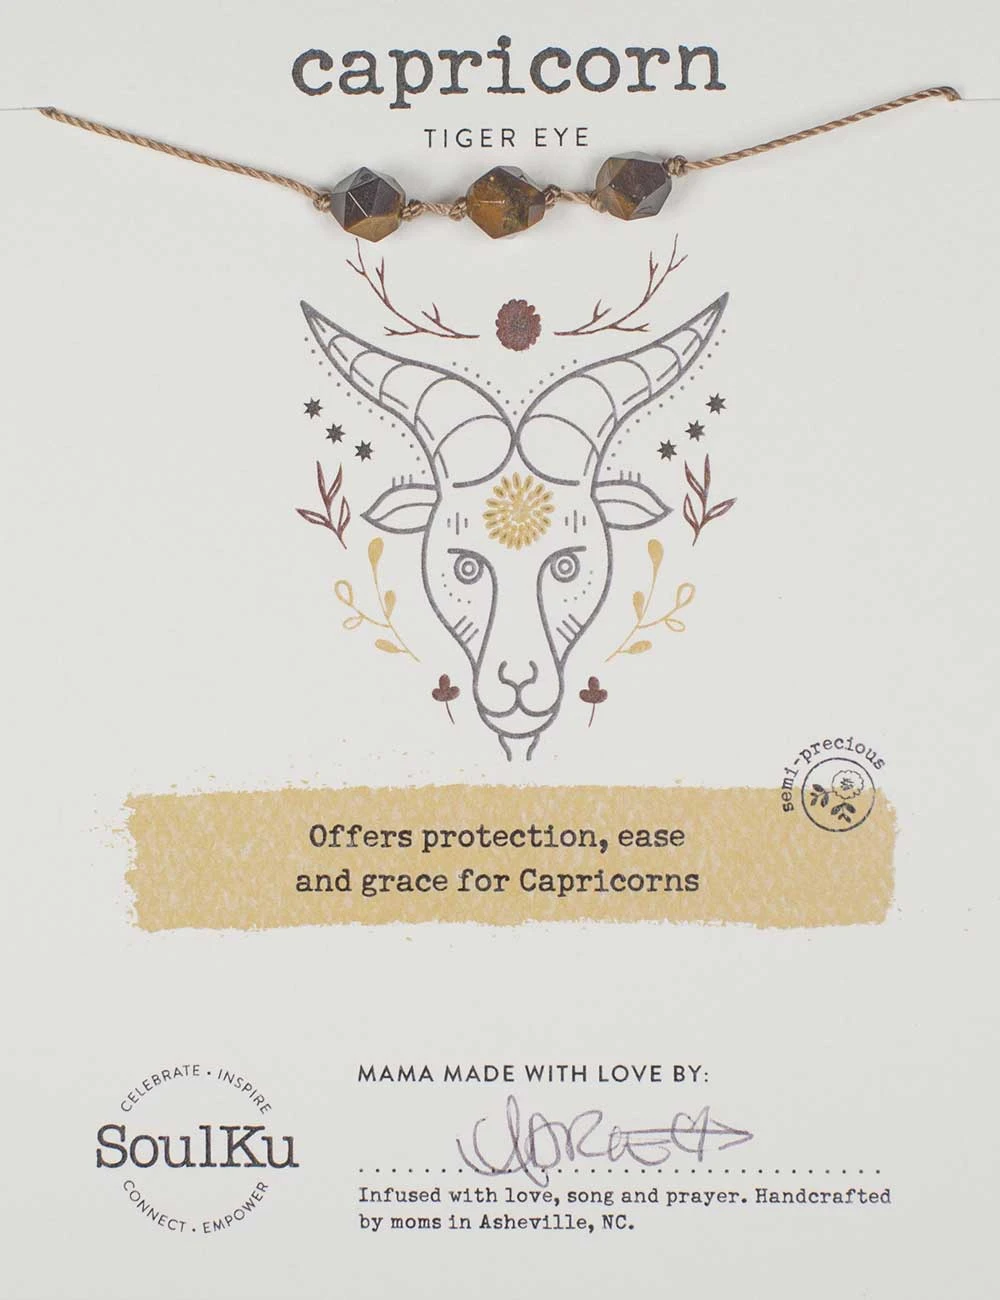 Capricorn Tiger Eye Necklace Package